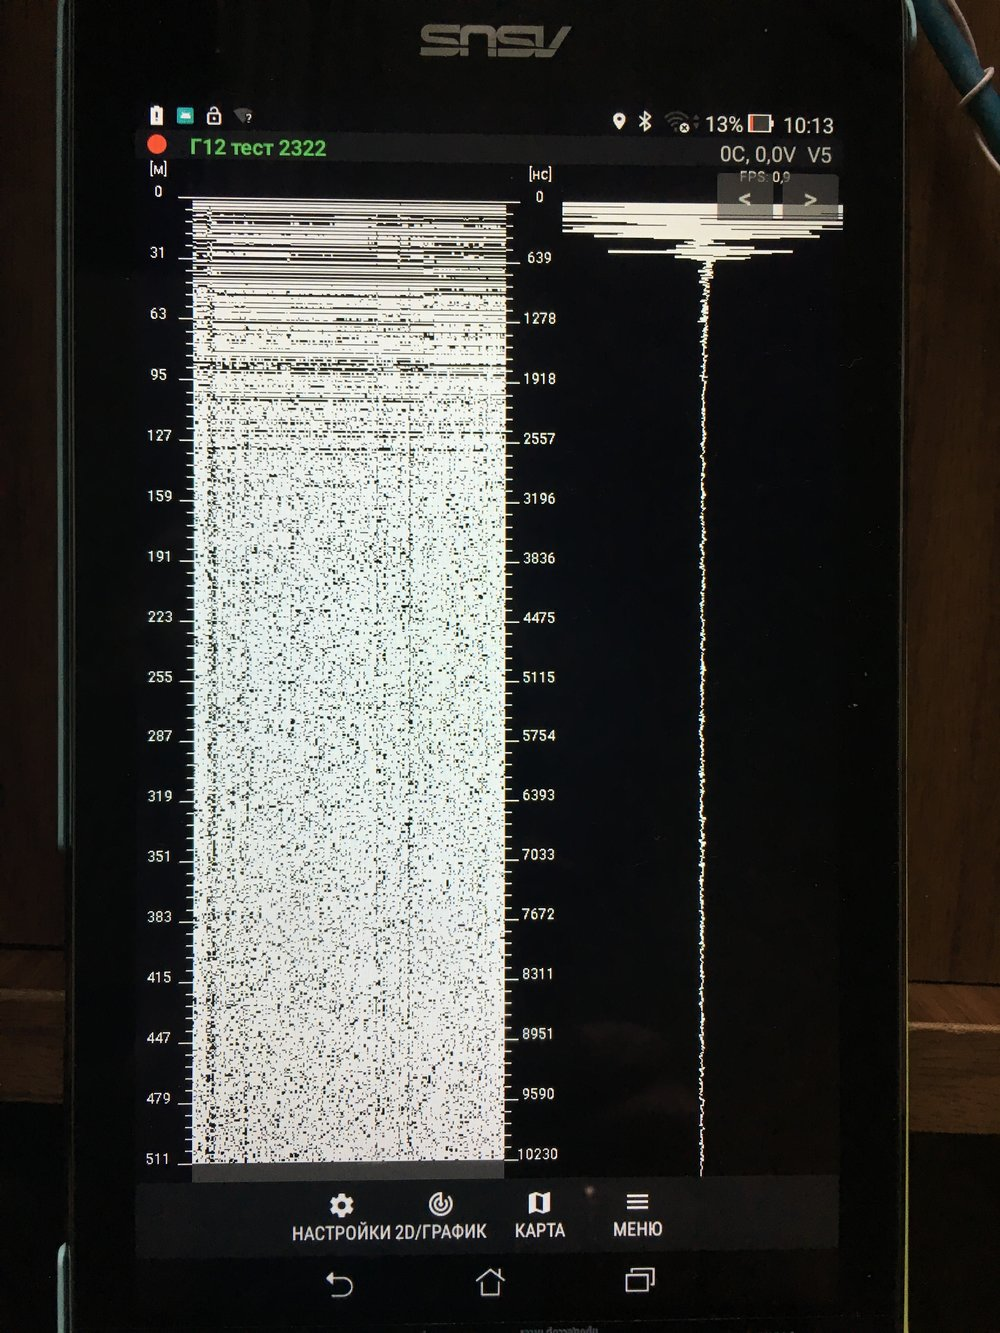 - Fig. 3. Screen of the Asus tablet based on Android with a test radargram and a waveform with a time delay of up to 10 microseconds.